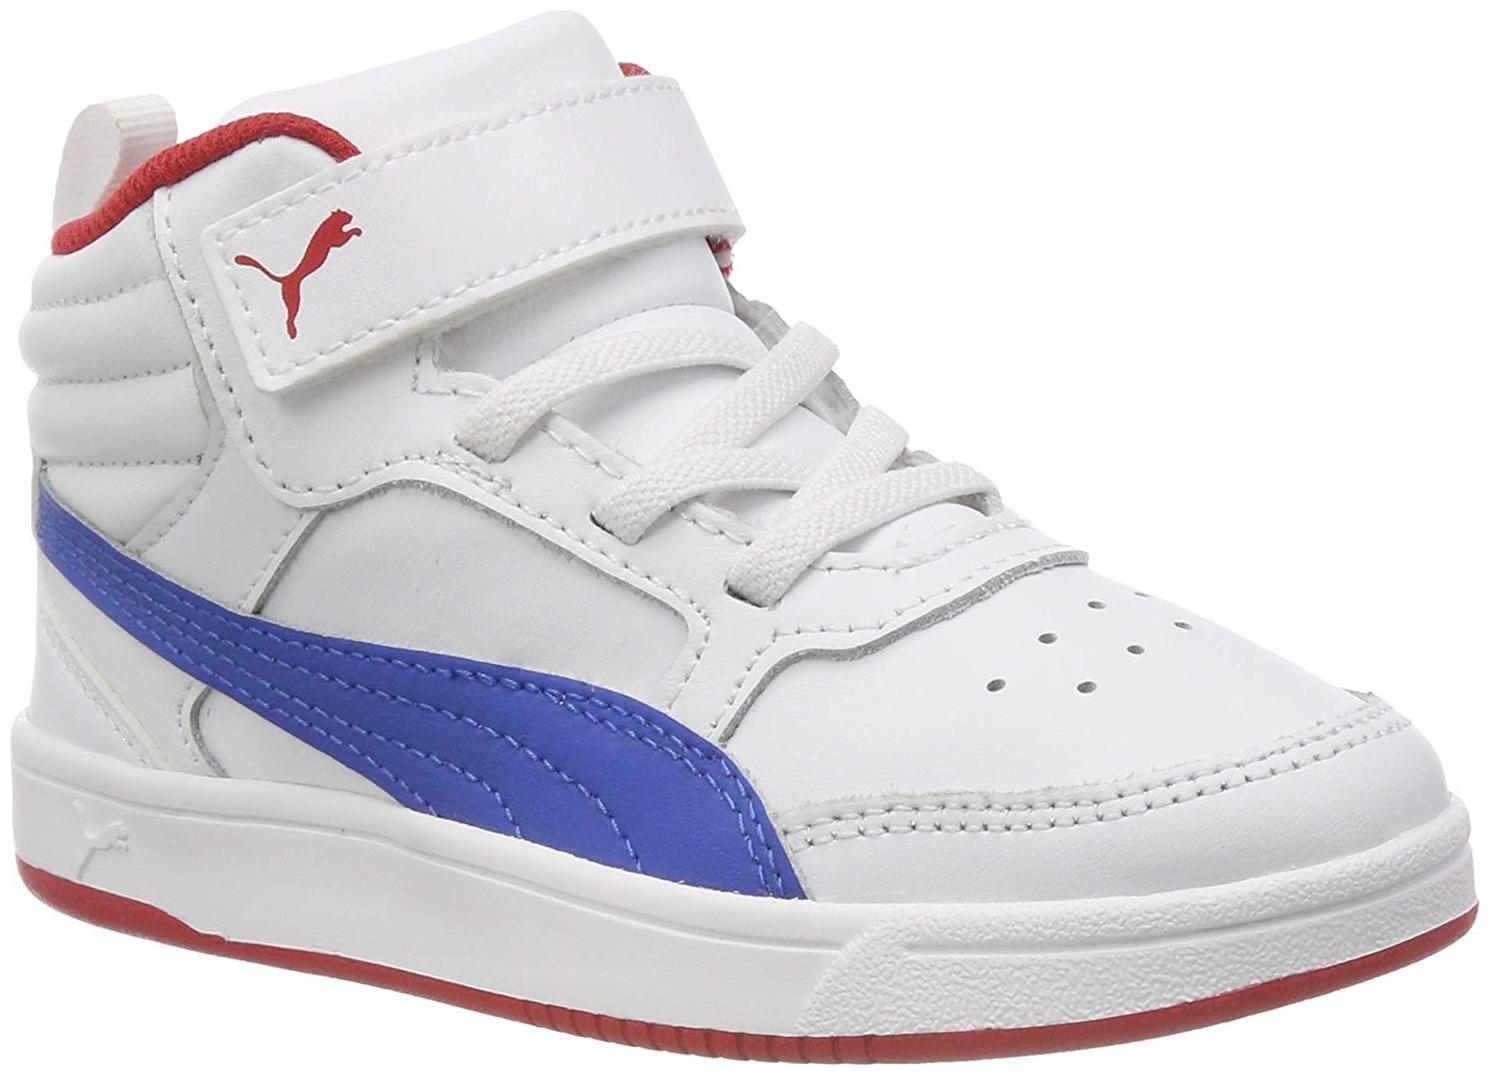 Buy Puma White Canvas shoes for boys